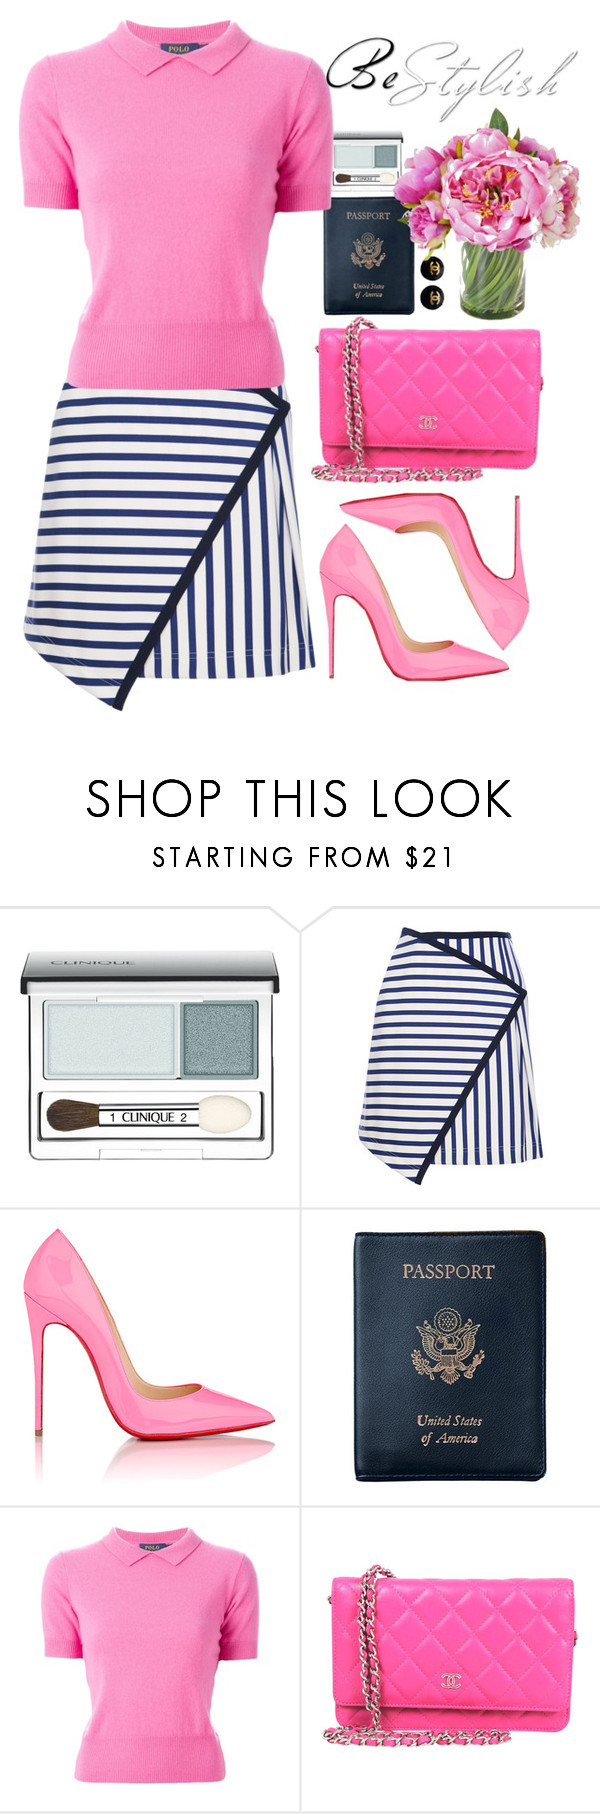 """""""Pink and Navy"""" by crblackflag on Polyvore featuring Clinique, Tanya Taylor, Christian Louboutin, Royce Leather, Polo Ralph Lauren, Chanel, POLO, stripes and christianlouboutin"""